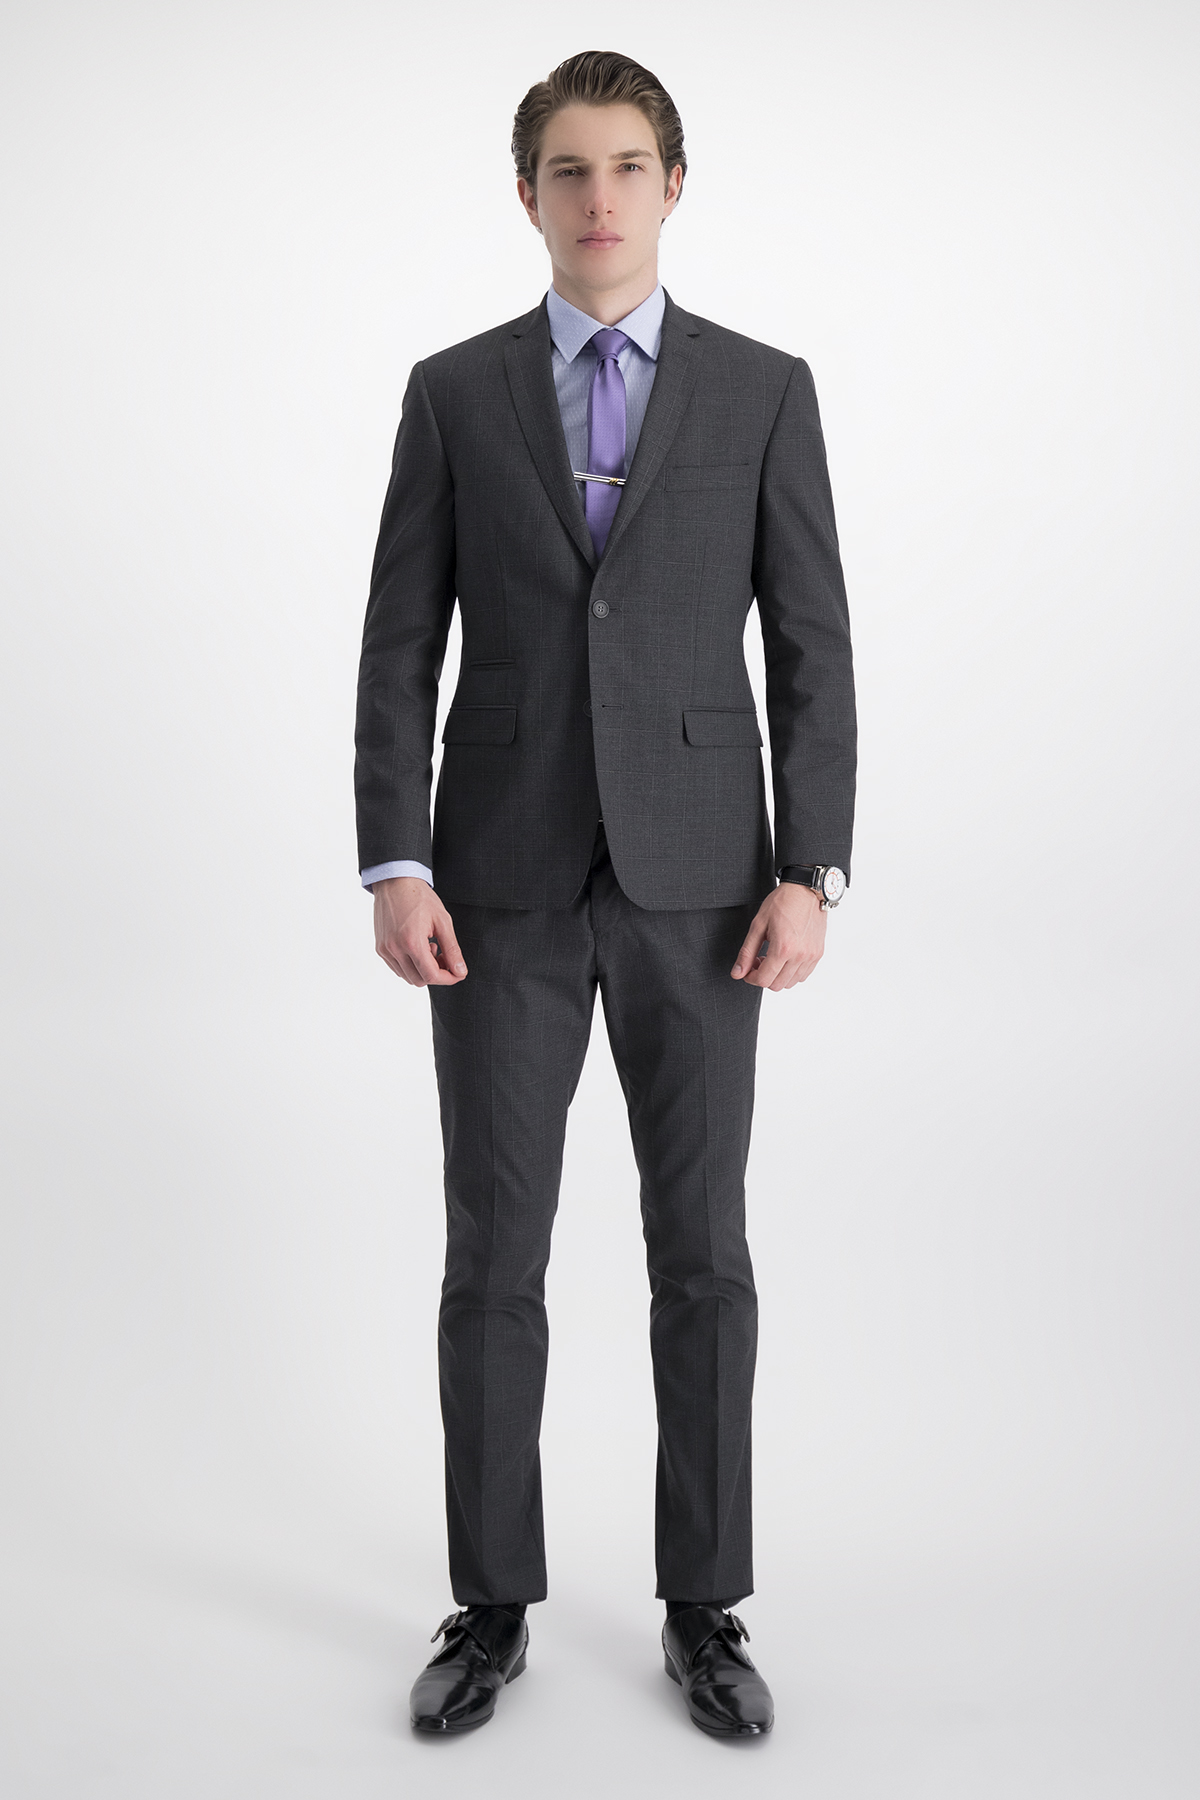 Oxford formal suit